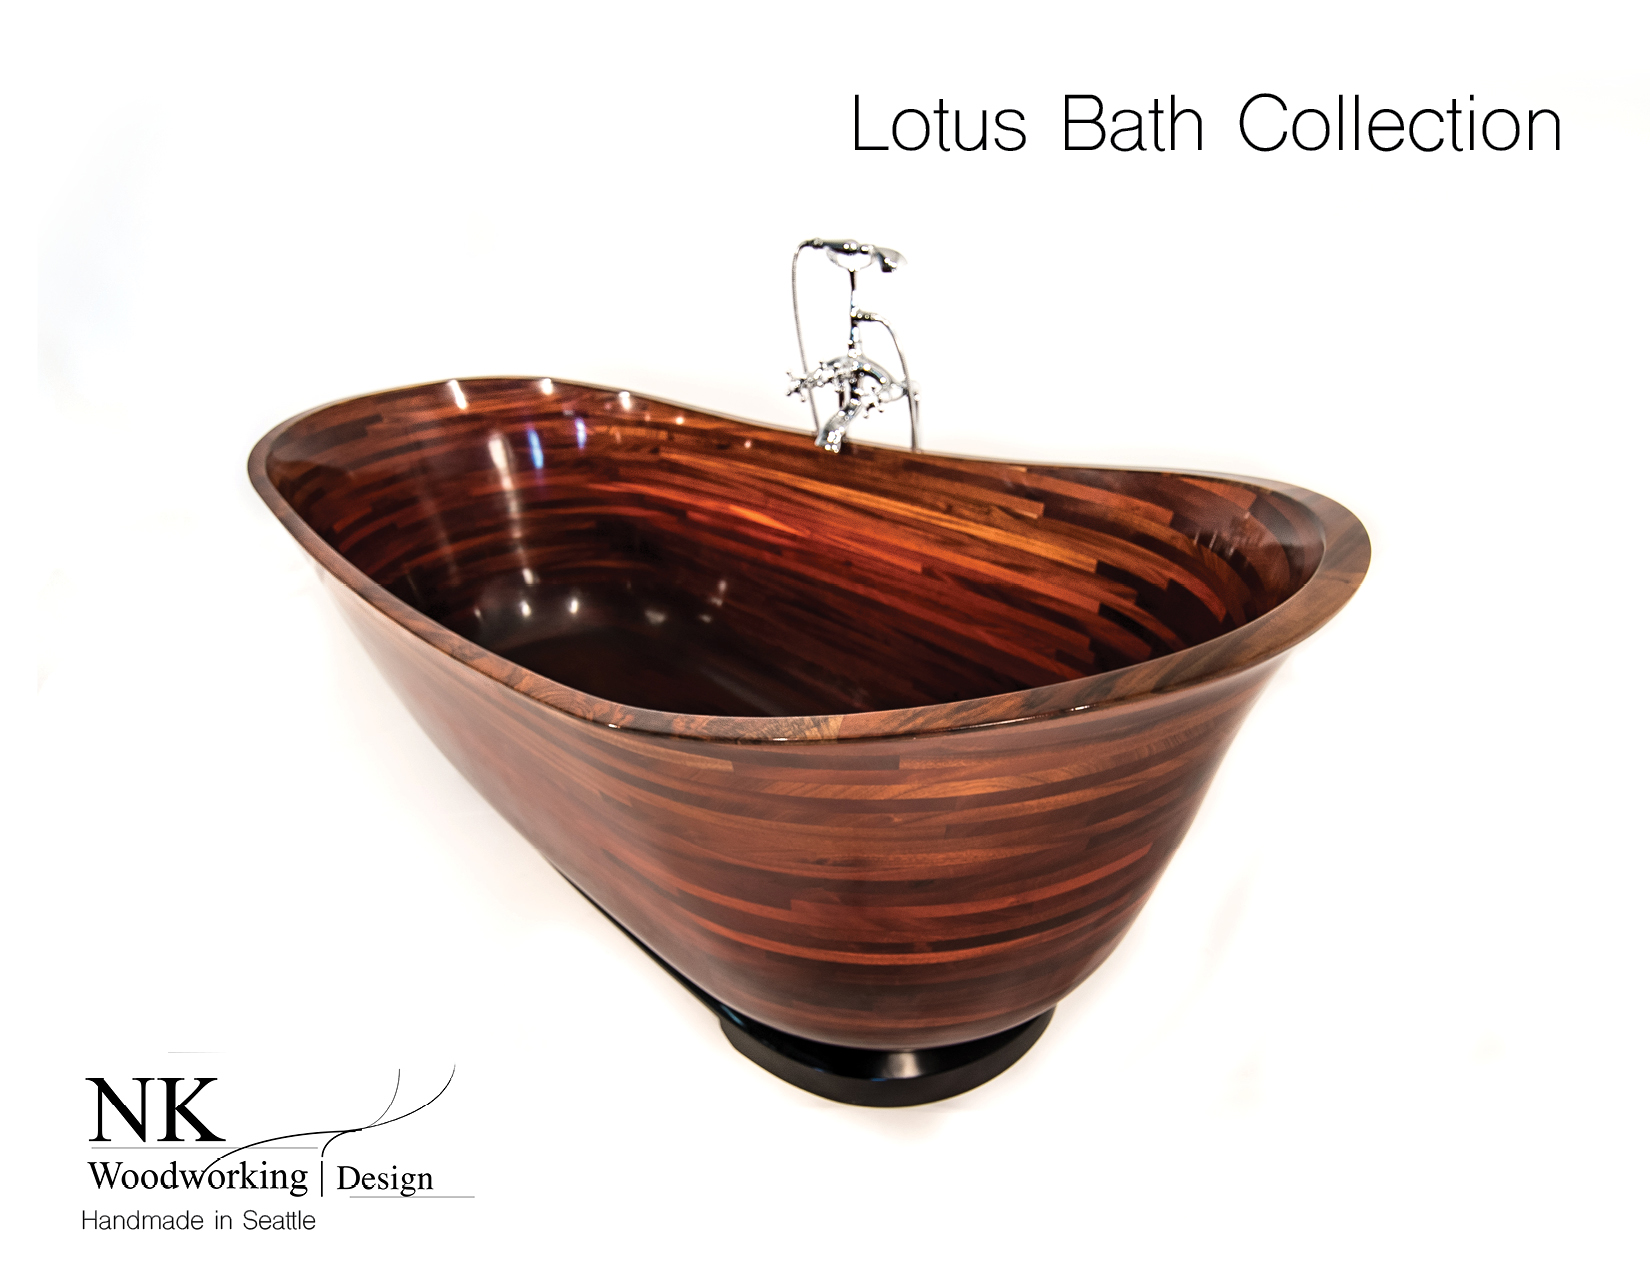 Lotus Bath Catalog 01.jpg